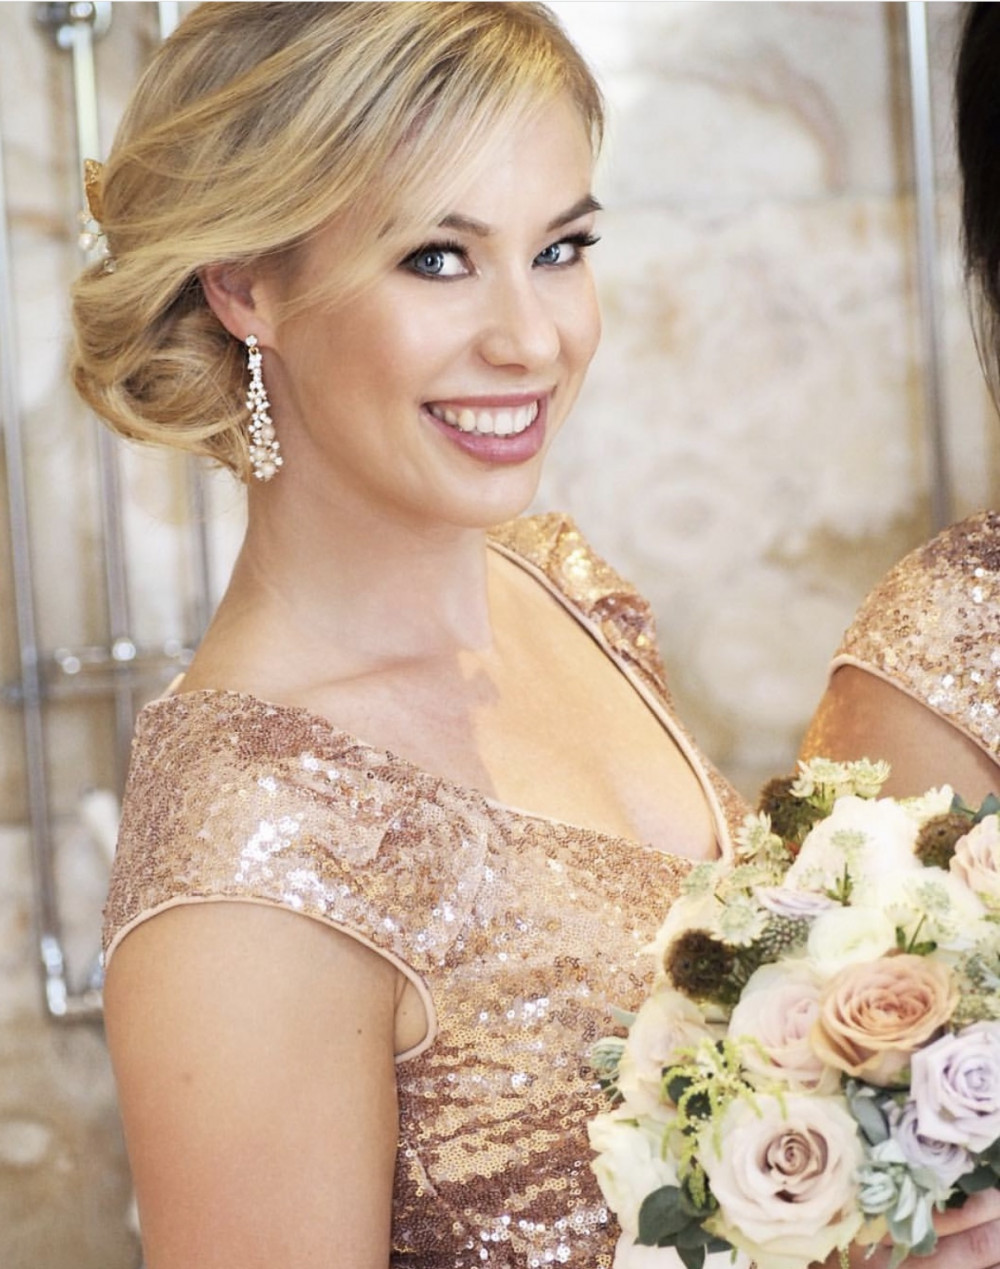 Very glamorous wedding at Hedsor House all in rose gold tones. This is one of the bridesmaids - Make Me Bridal Artist: Mel Kinsman. Photography by: Emma Jane Lewis. #classic #vintage #glamorous #rosegold #prettymakeup